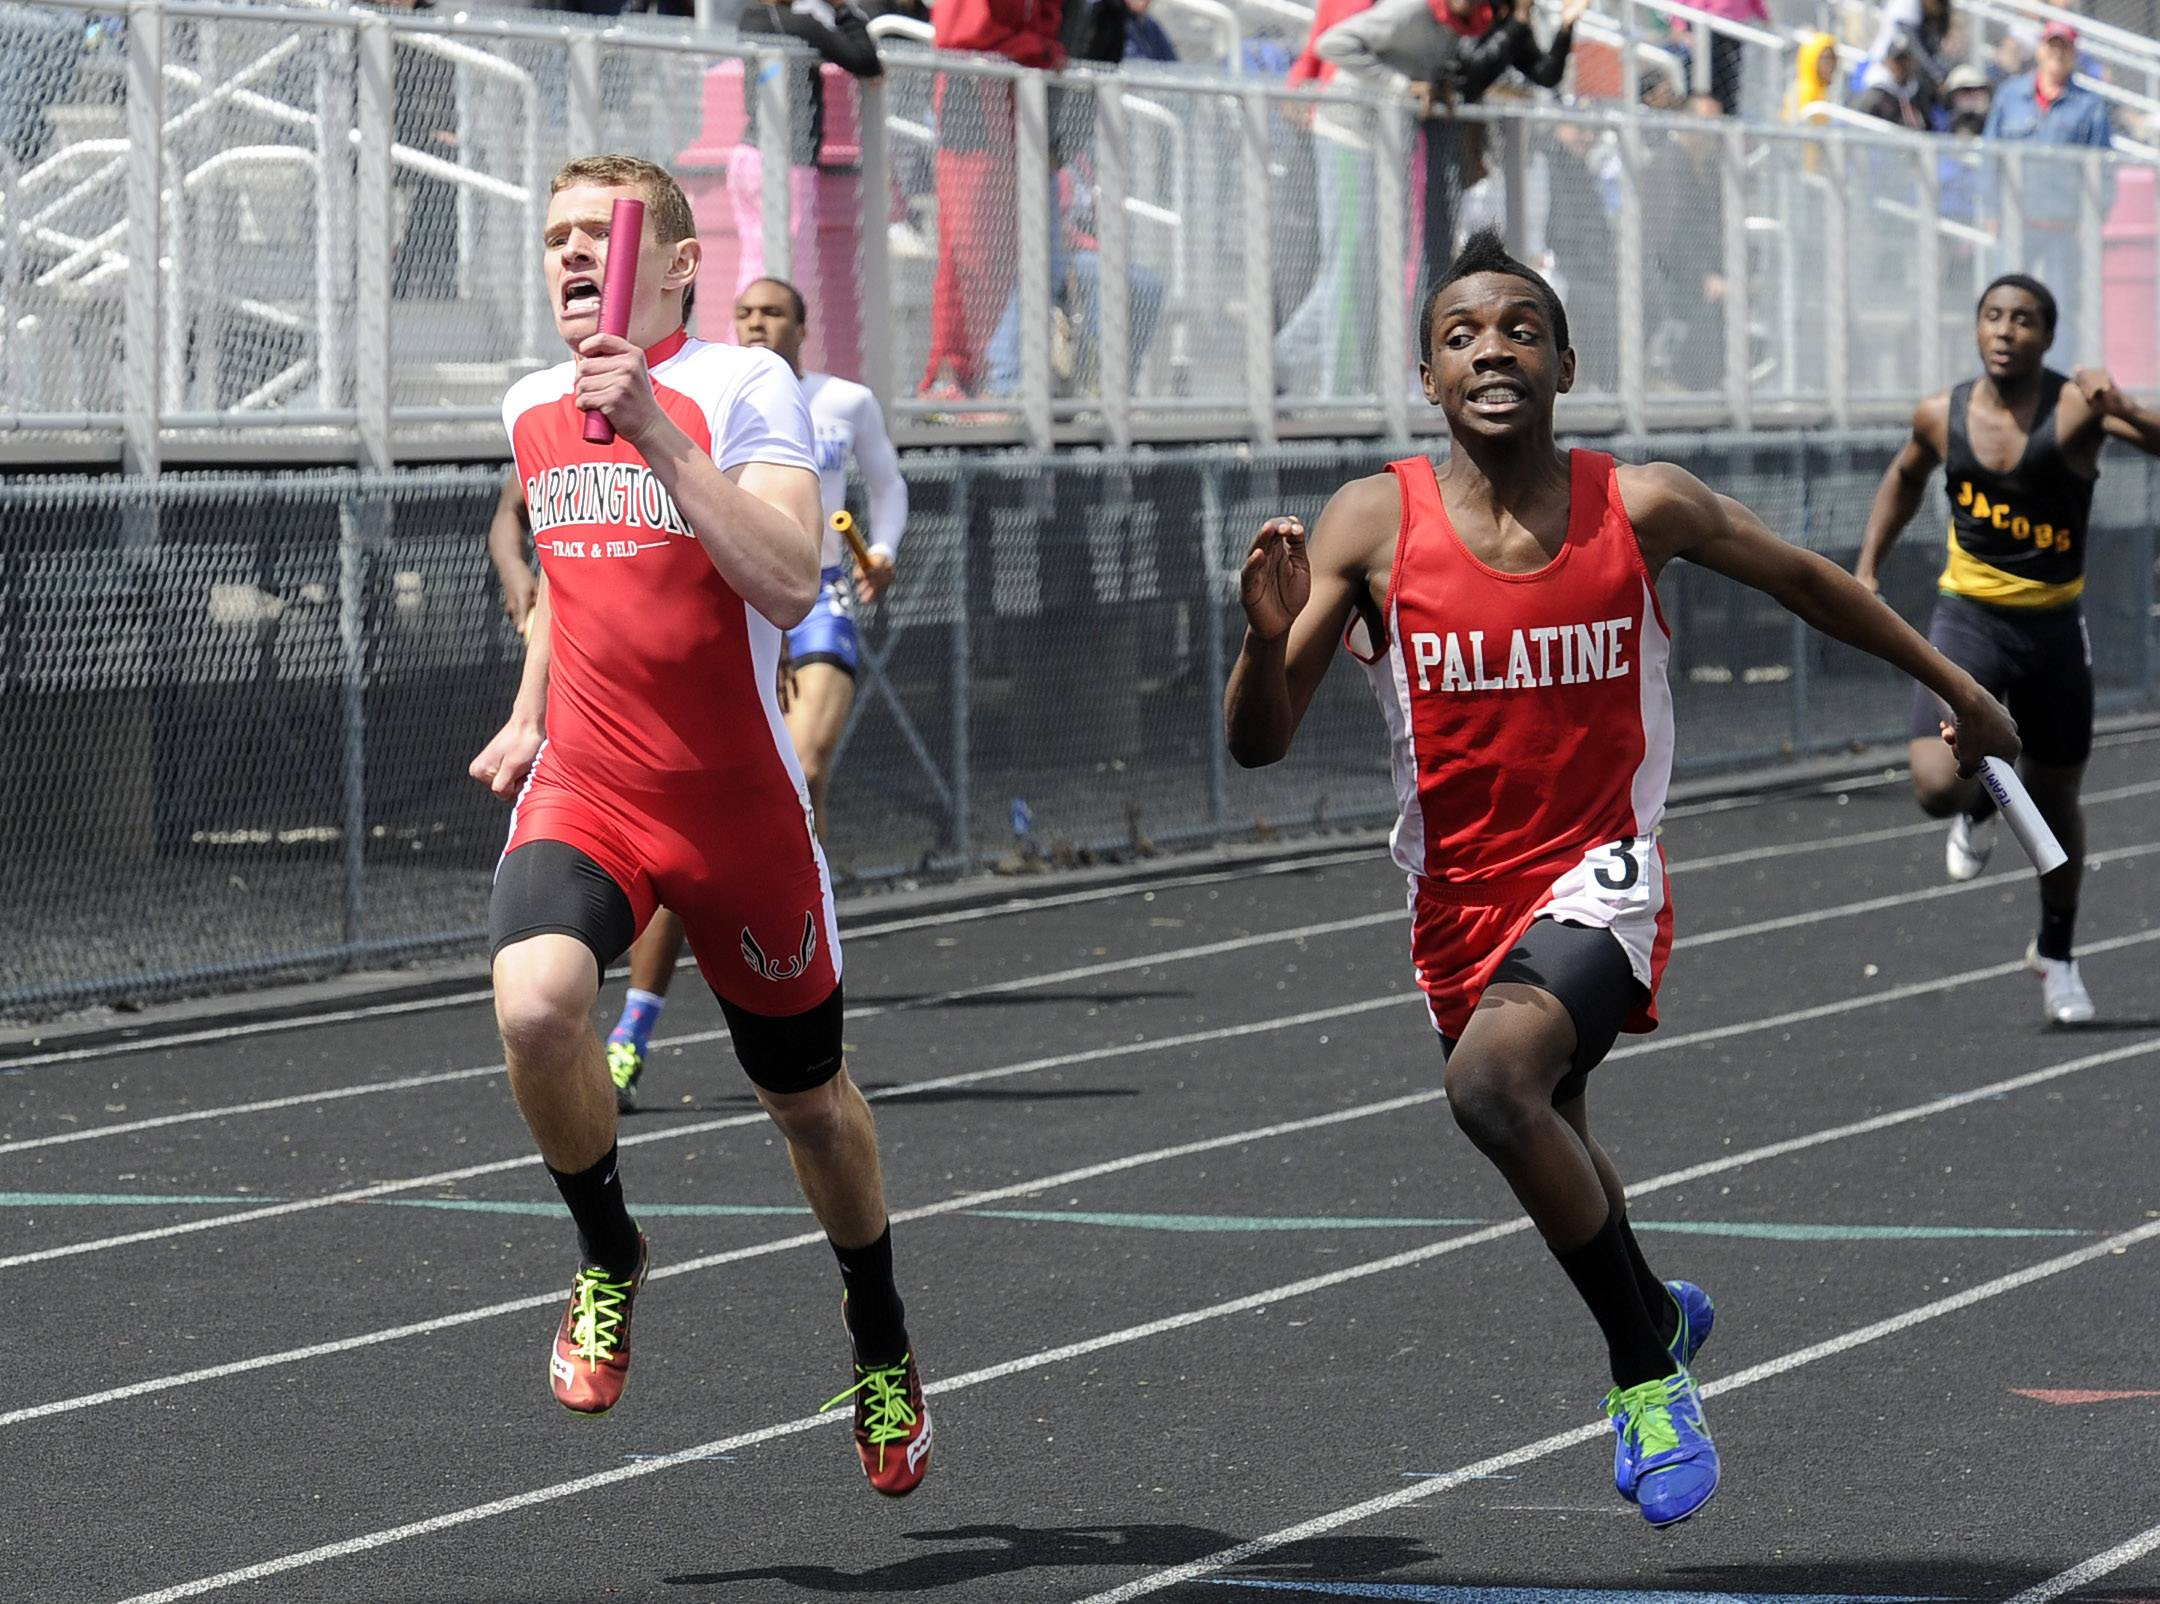 Palatine's Zion Oluleye edges out Barrington's Mark Landwer for a Pirates victory in the 4x200 relay on Saturday at Chic Anderson Field.